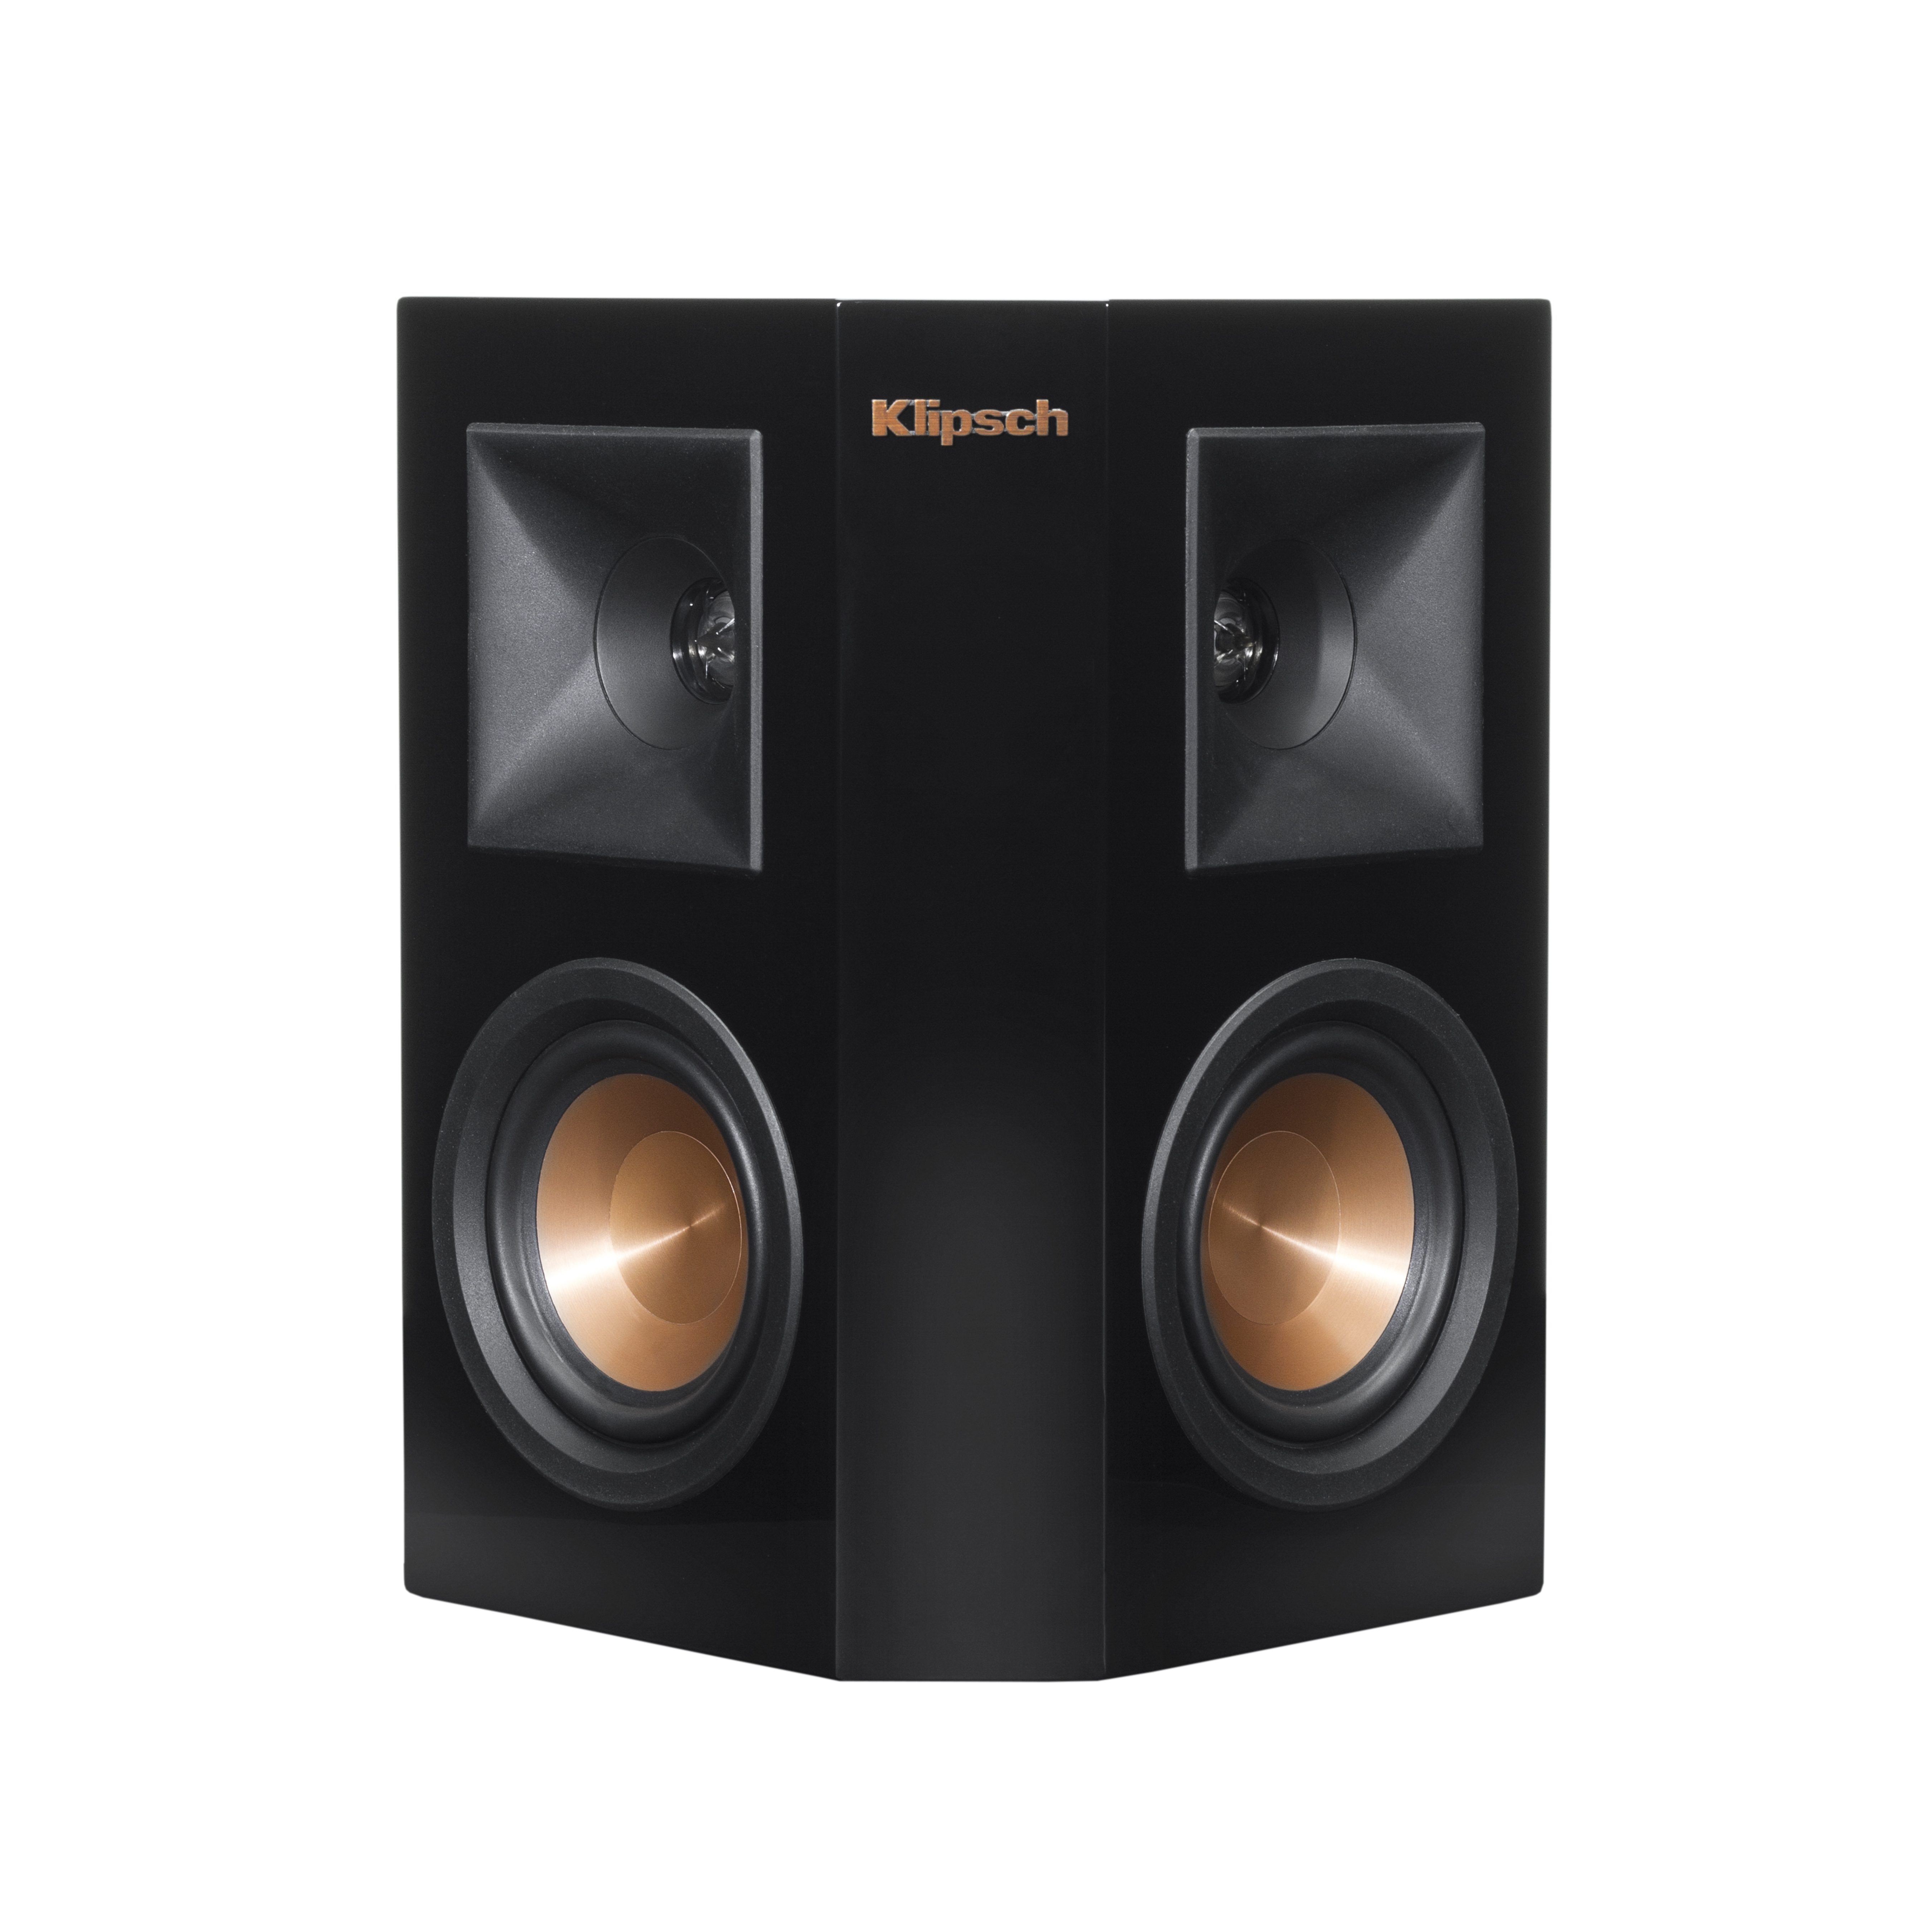 Rp 240 S Piano Black Front